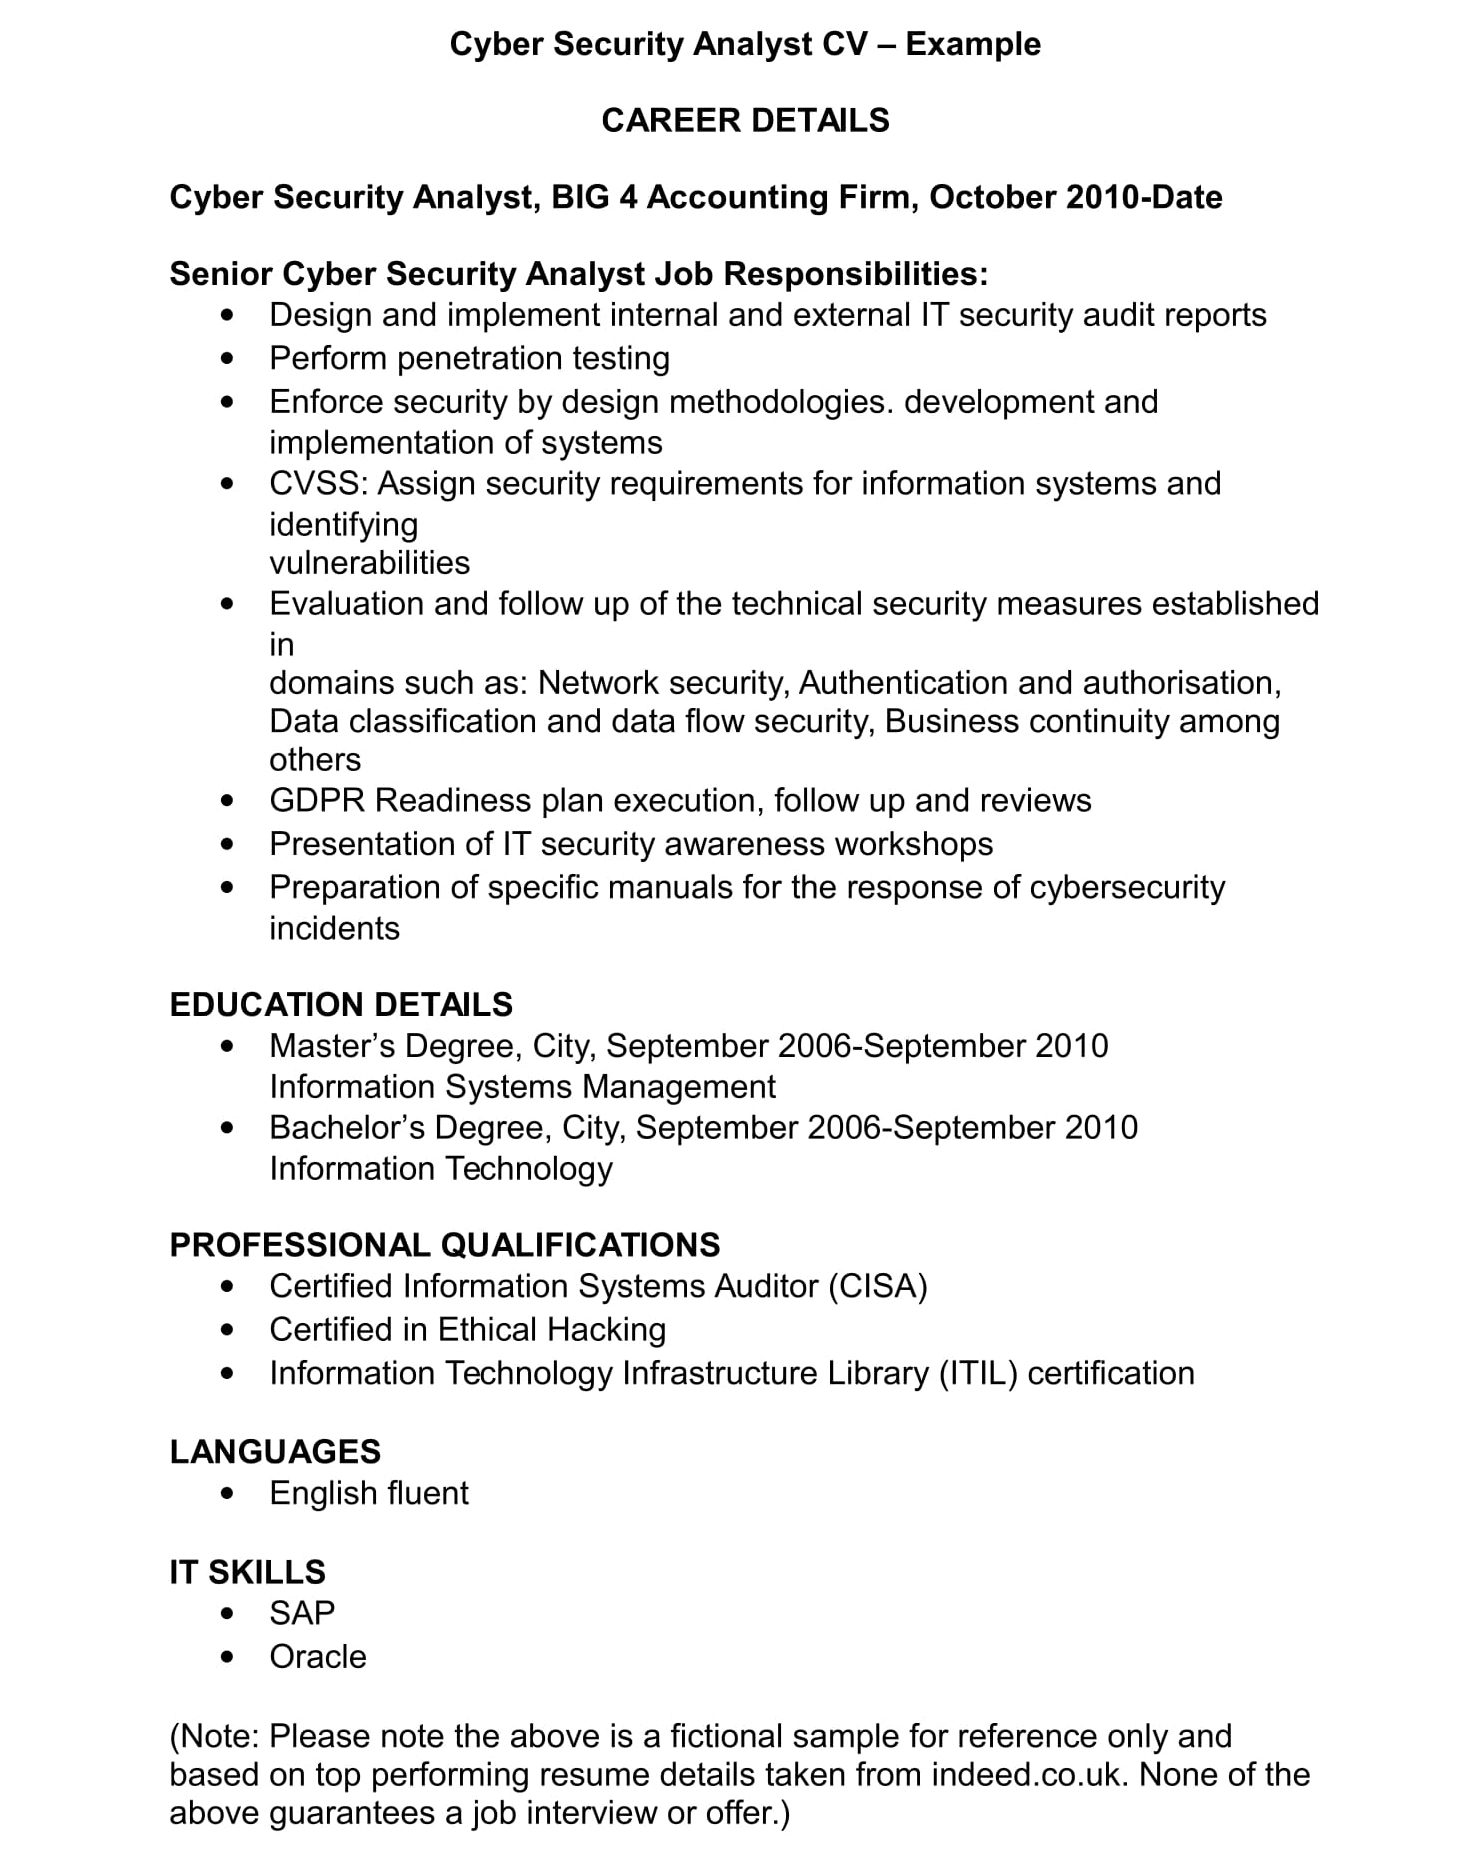 cyber security cv template and examples renaix incident response analyst resume example Resume Incident Response Analyst Resume